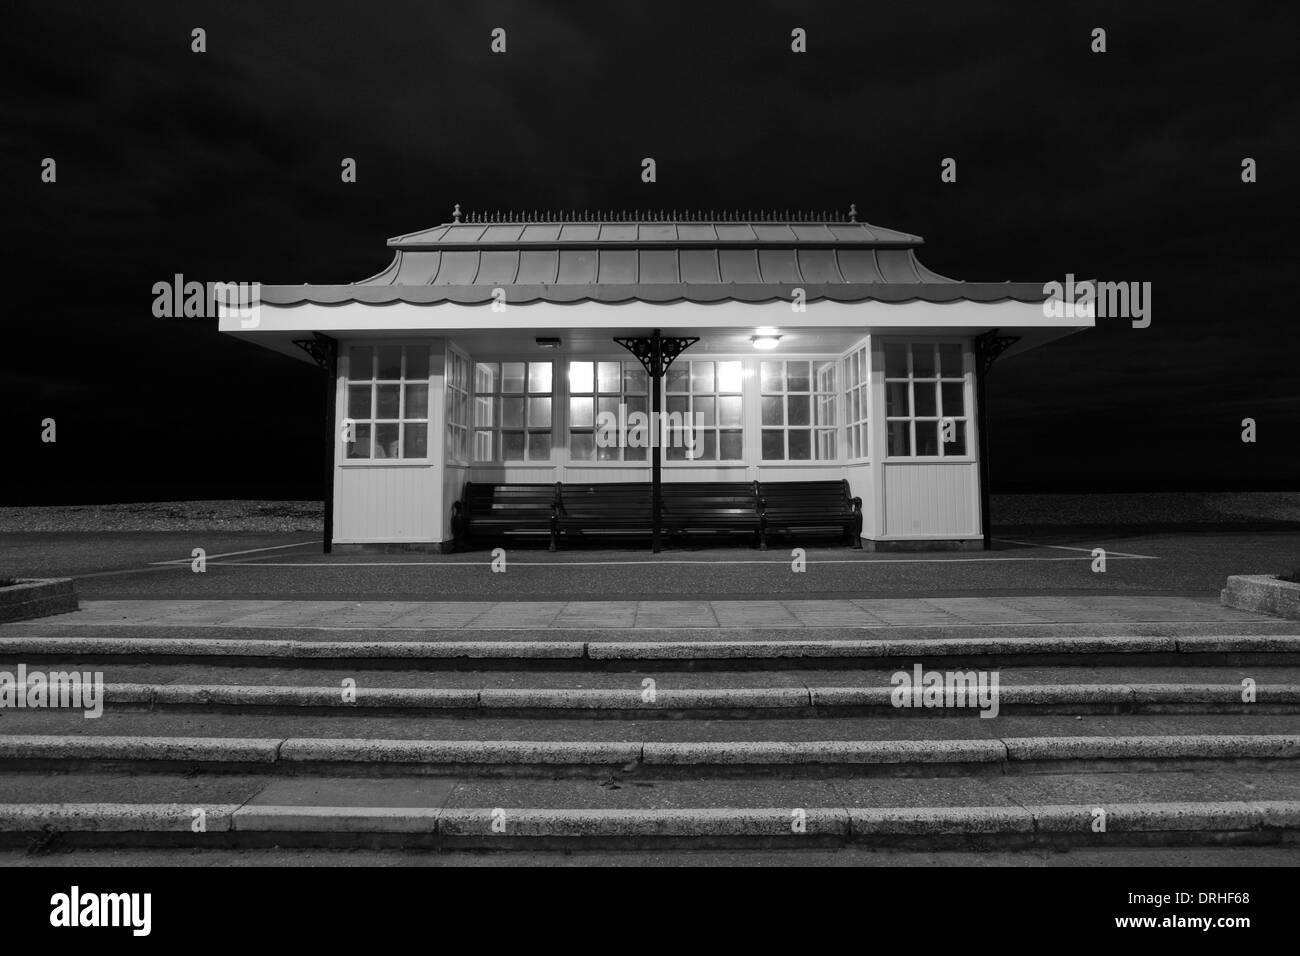 Black and White image, Shelter at Splash Point, Worthing town, West Sussex County, England, UK - Stock Image